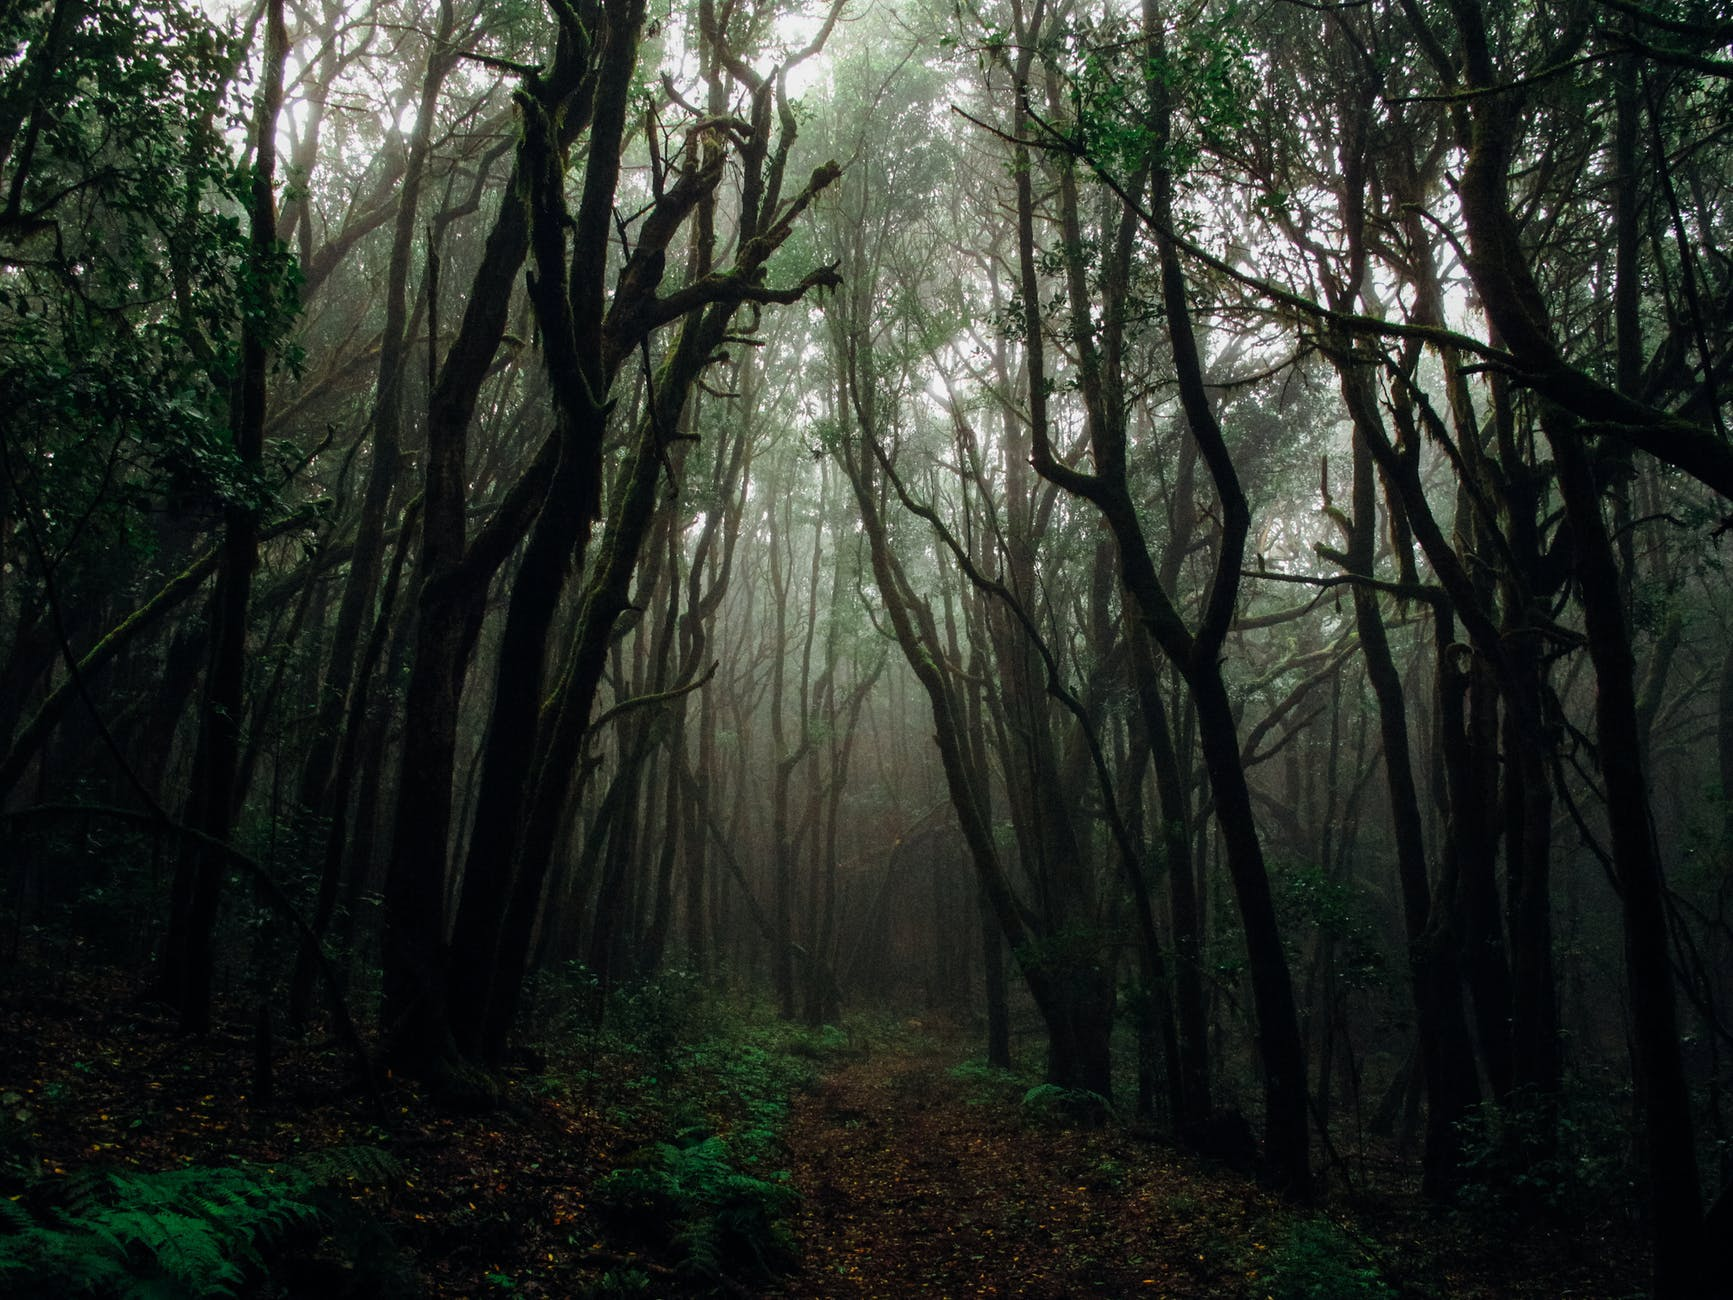 Forest,Nature,Woodland,Tree,Natural landscape,Old-growth forest,Natural environment,Atmospheric phenomenon,Green,Tropical and subtropical coniferous forests